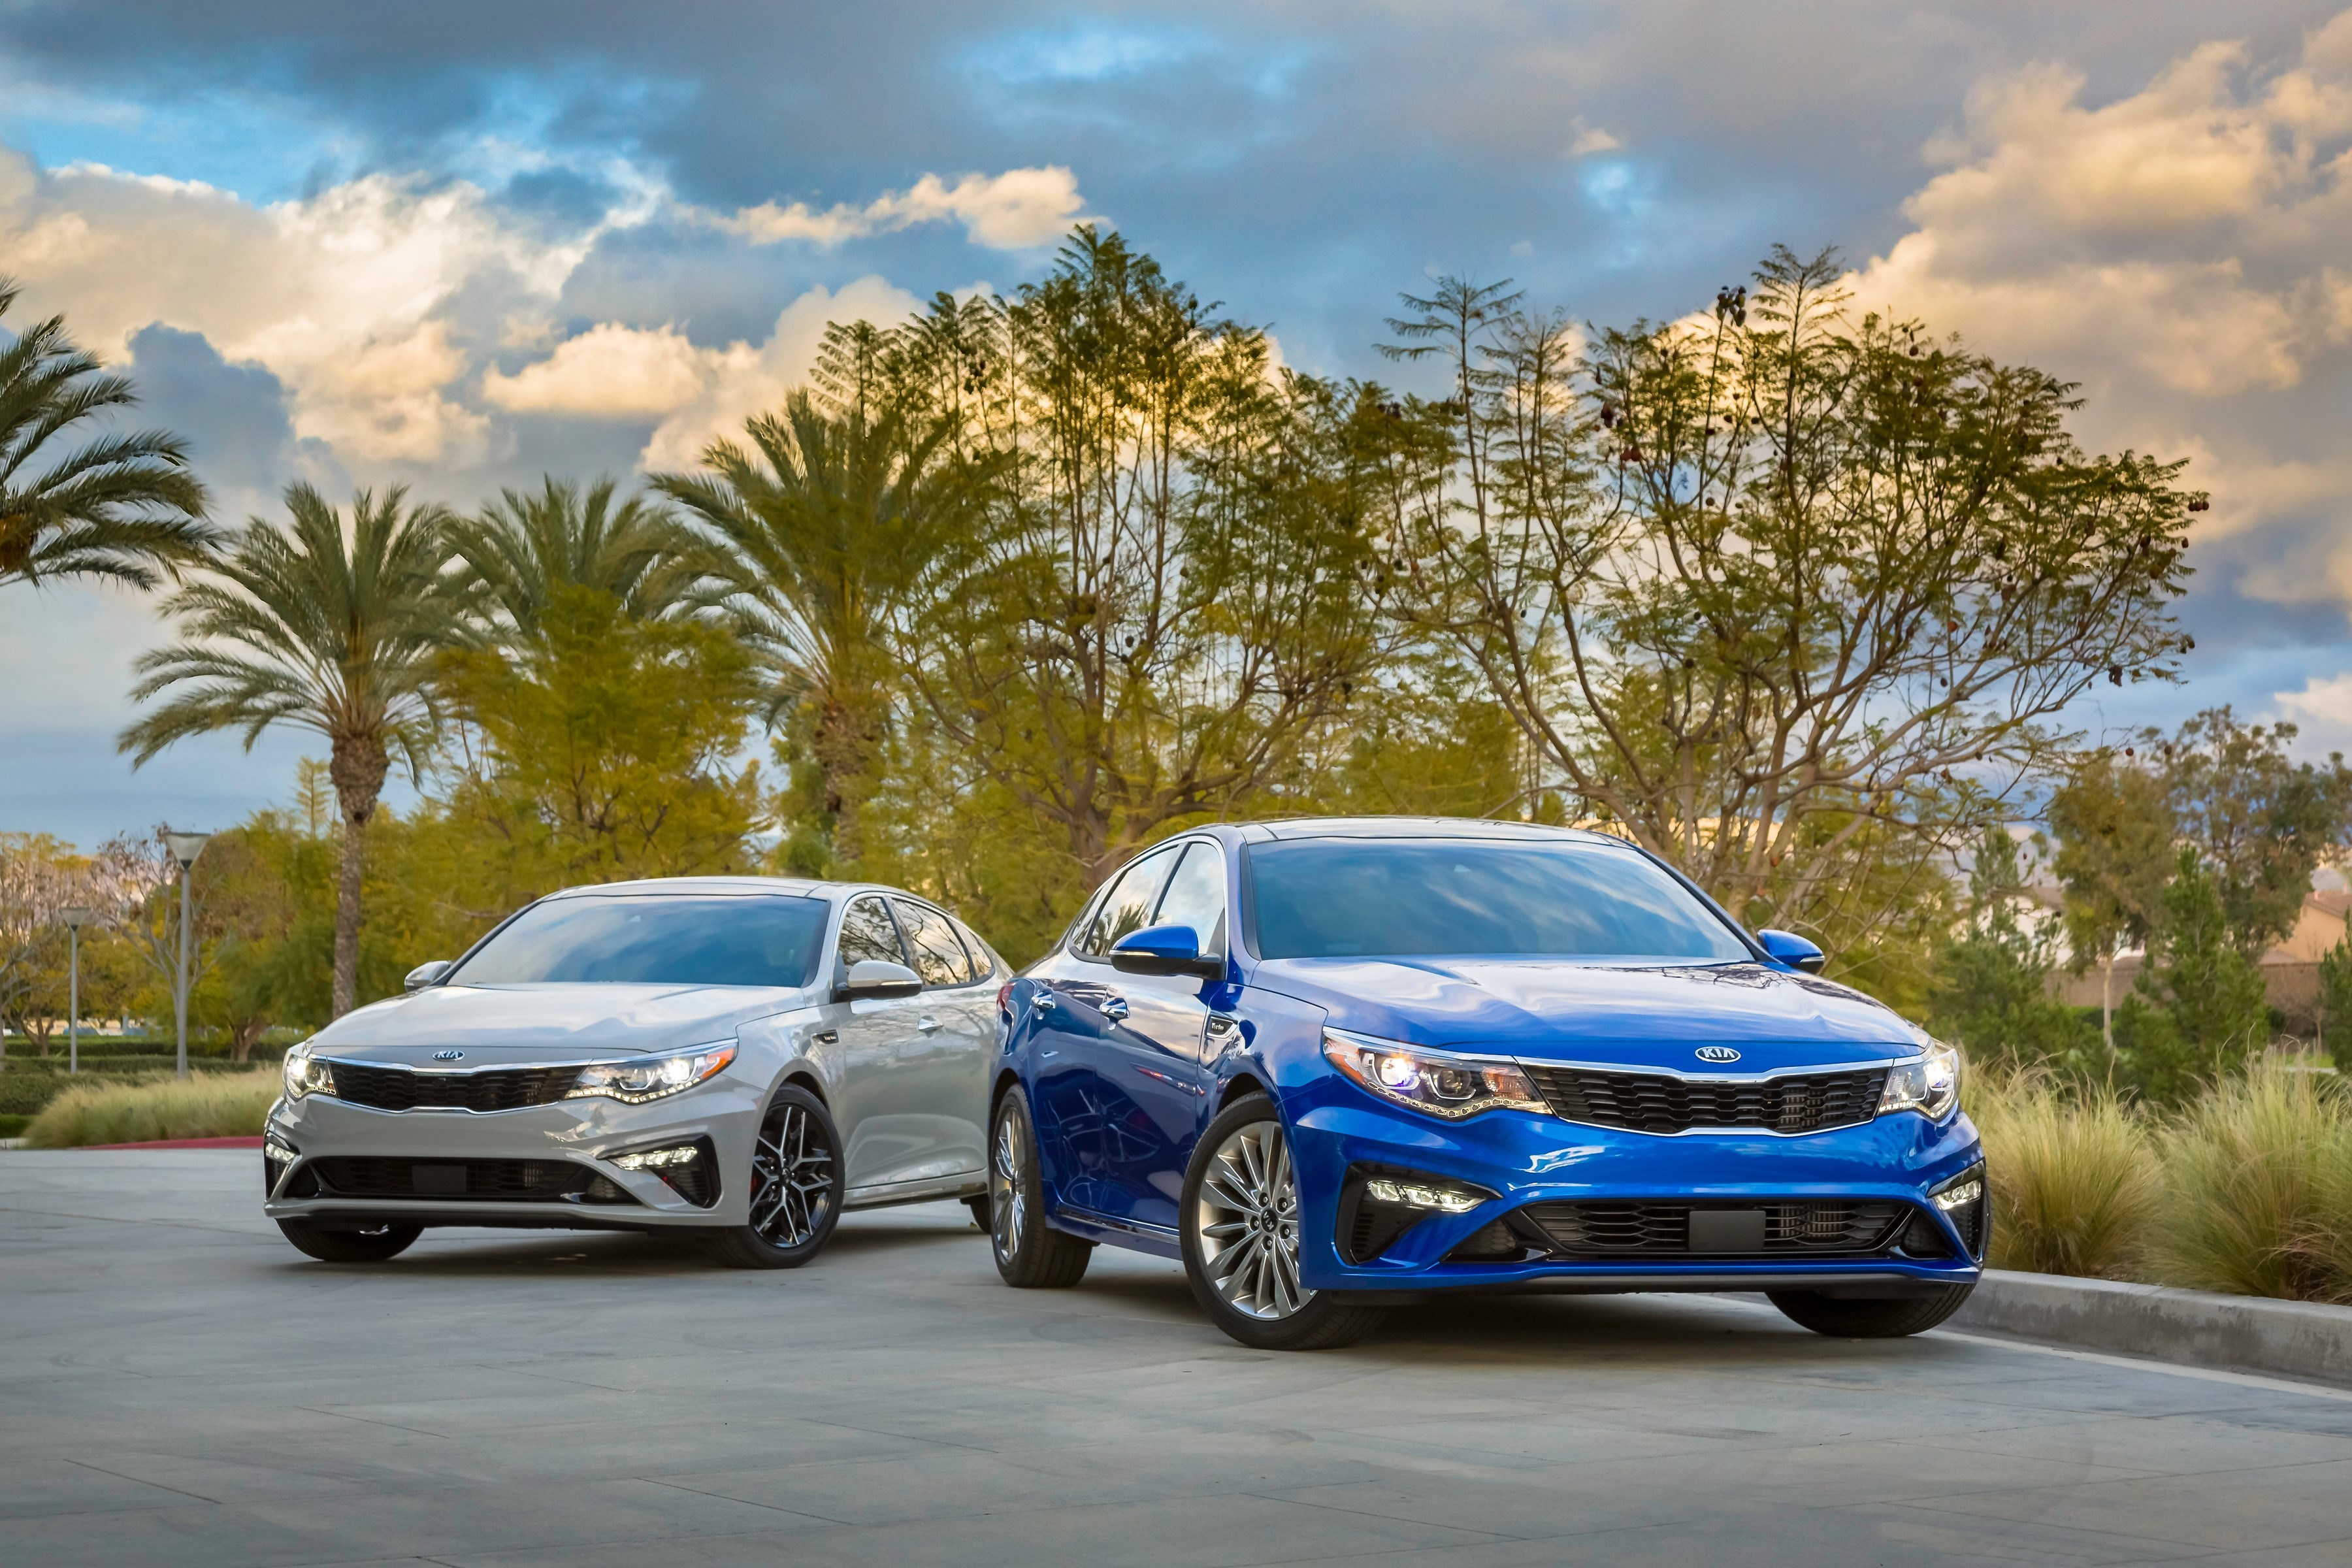 Refreshed 2019 Kia Optima Arrives to the US-market - Korean Car Blog